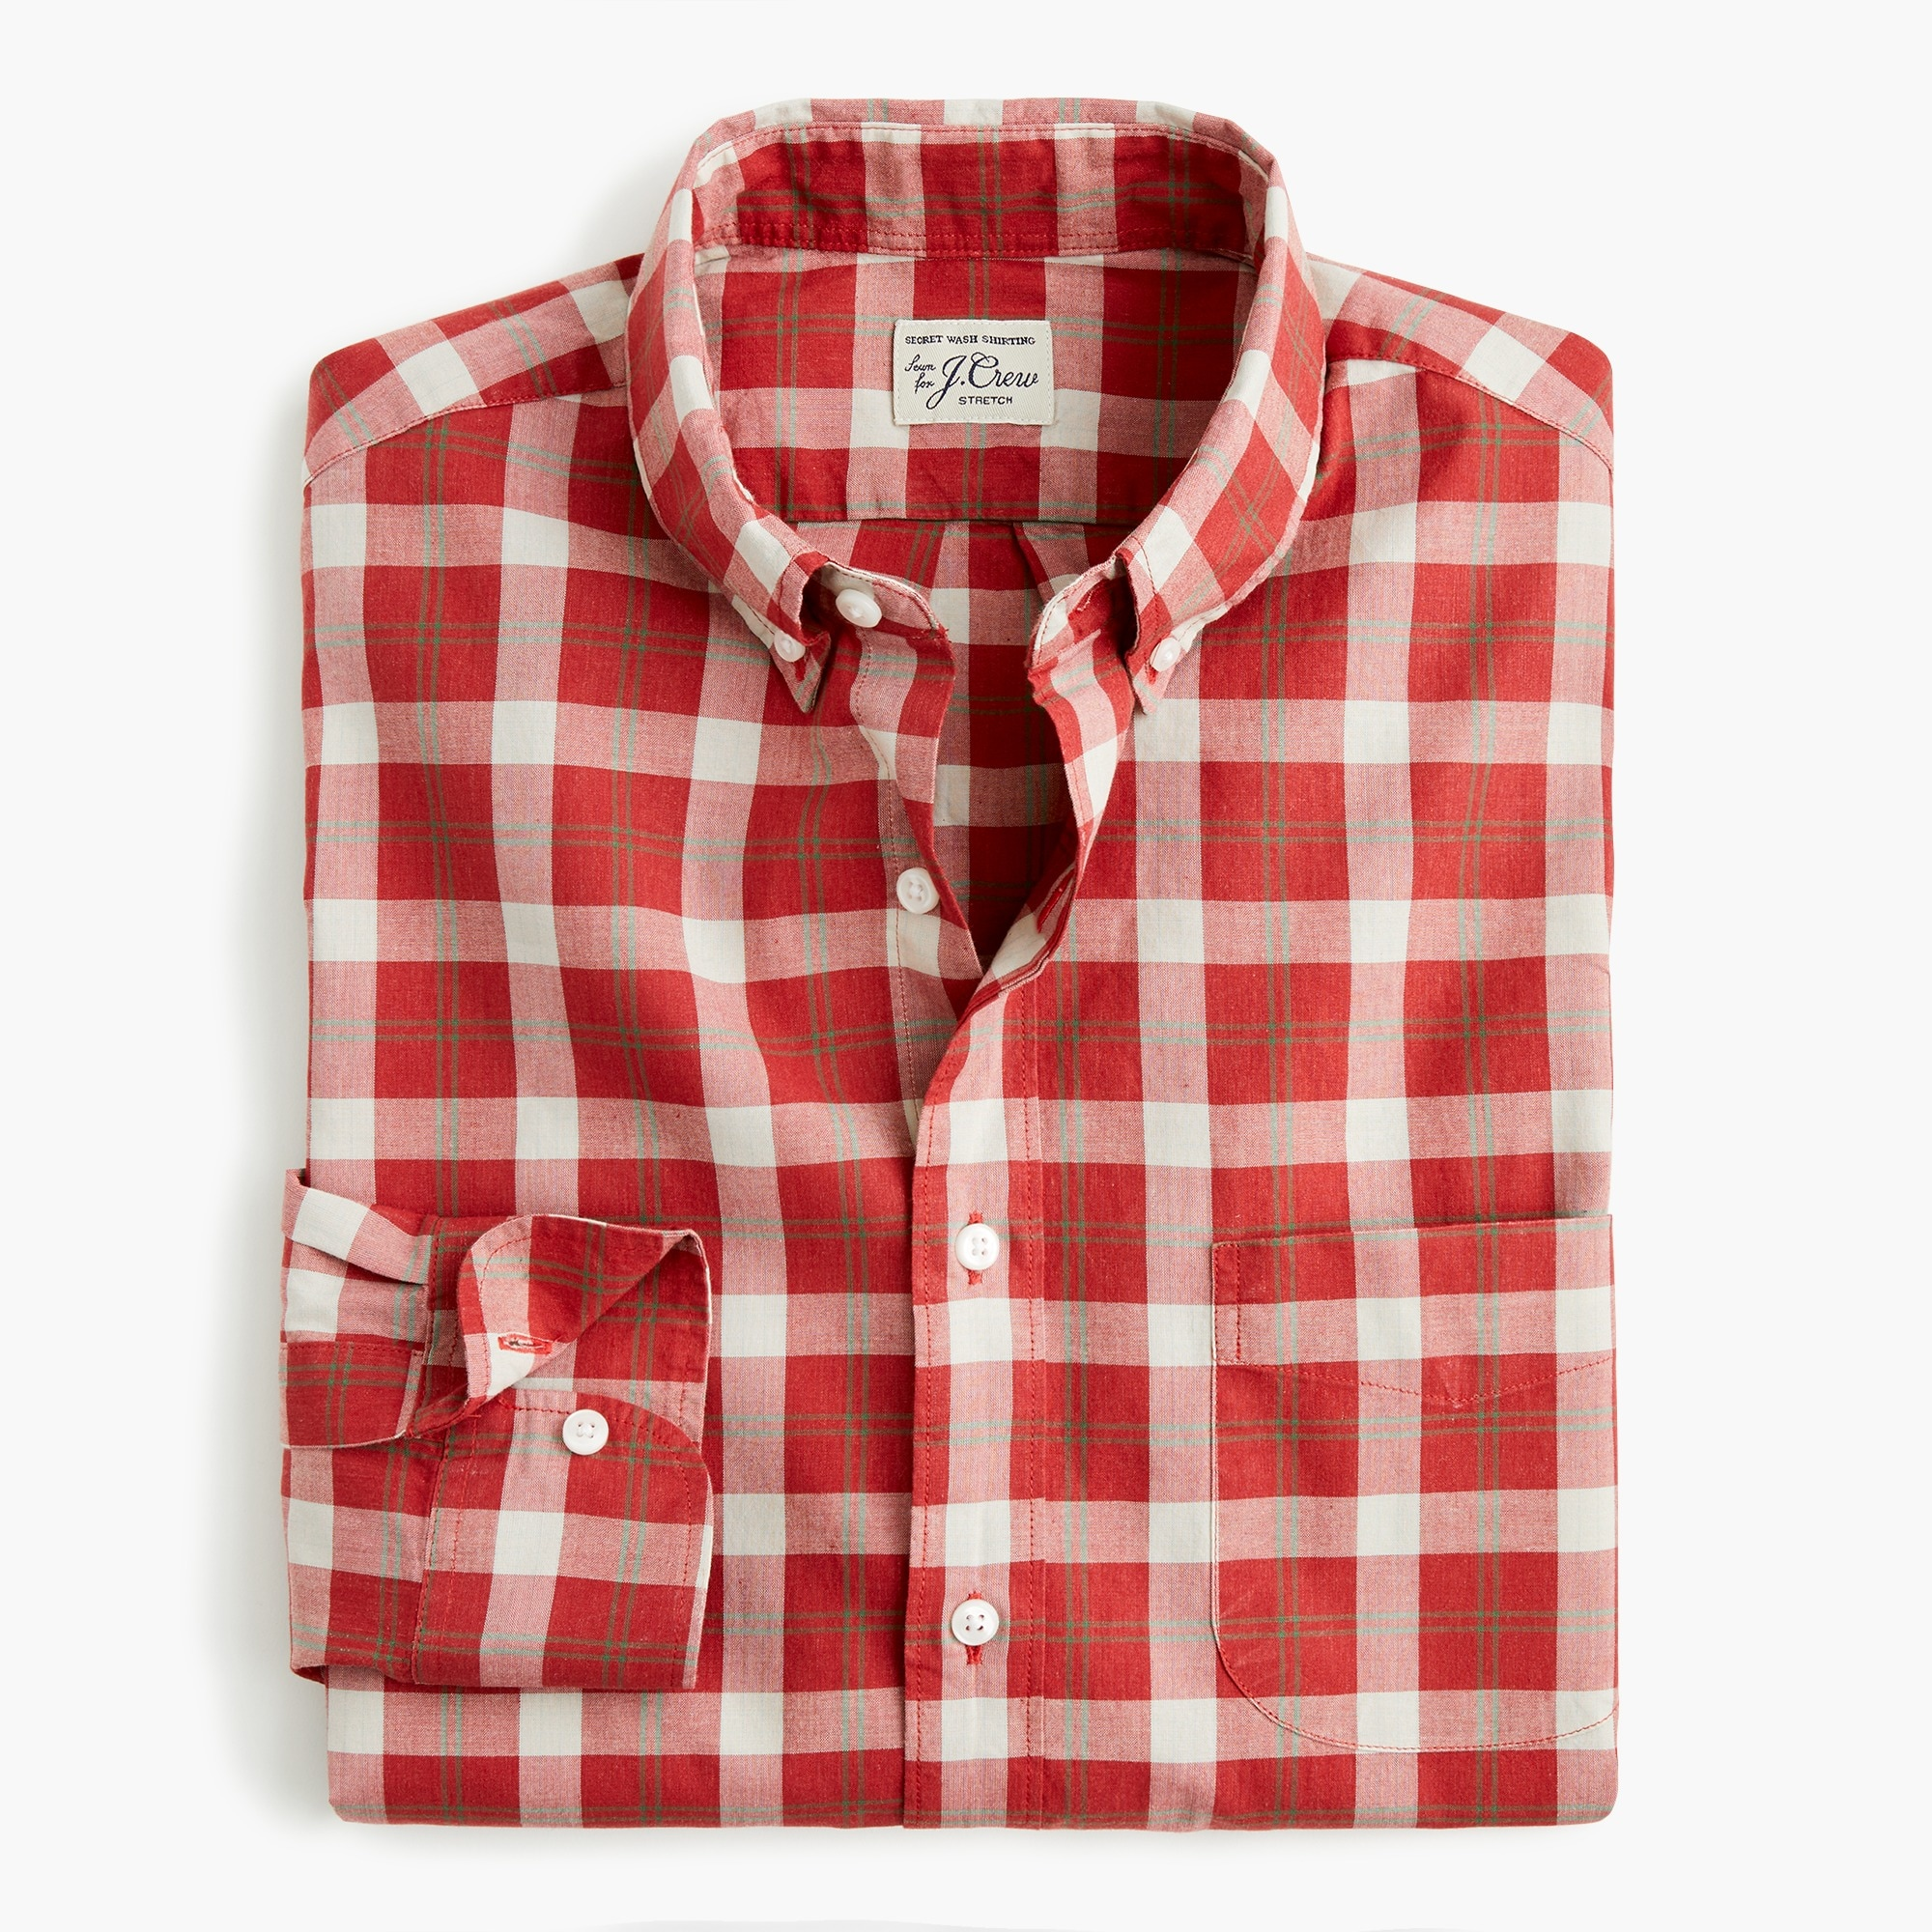 Classic Stretch Secret Wash shirt in criss-cross plaid